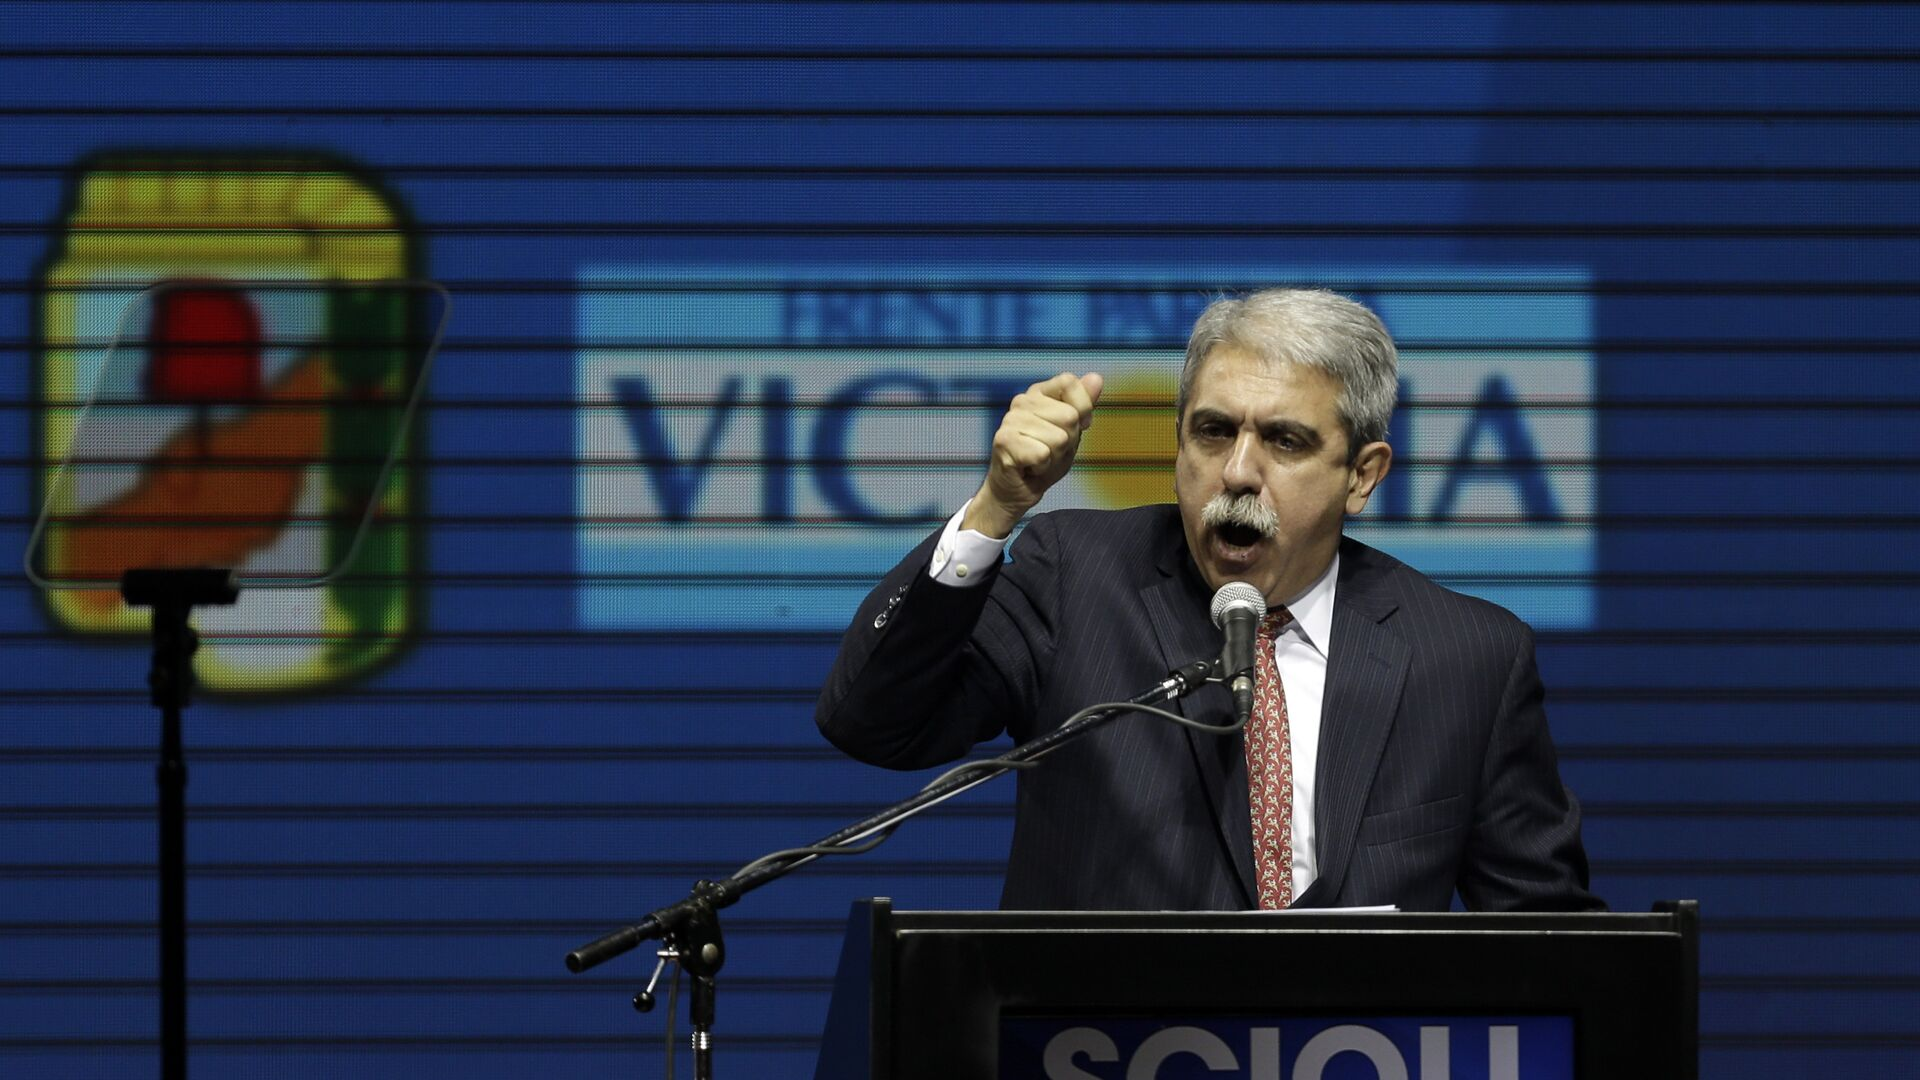 Buenos Aires' province Governor candidate and Argentina's Cabinet chief, Anibal Fernandez talks to supporters at a closing campaign rally in Buenos Aires, Argentina, Thursday, Oct. 22, 2015. - Sputnik Mundo, 1920, 29.09.2021